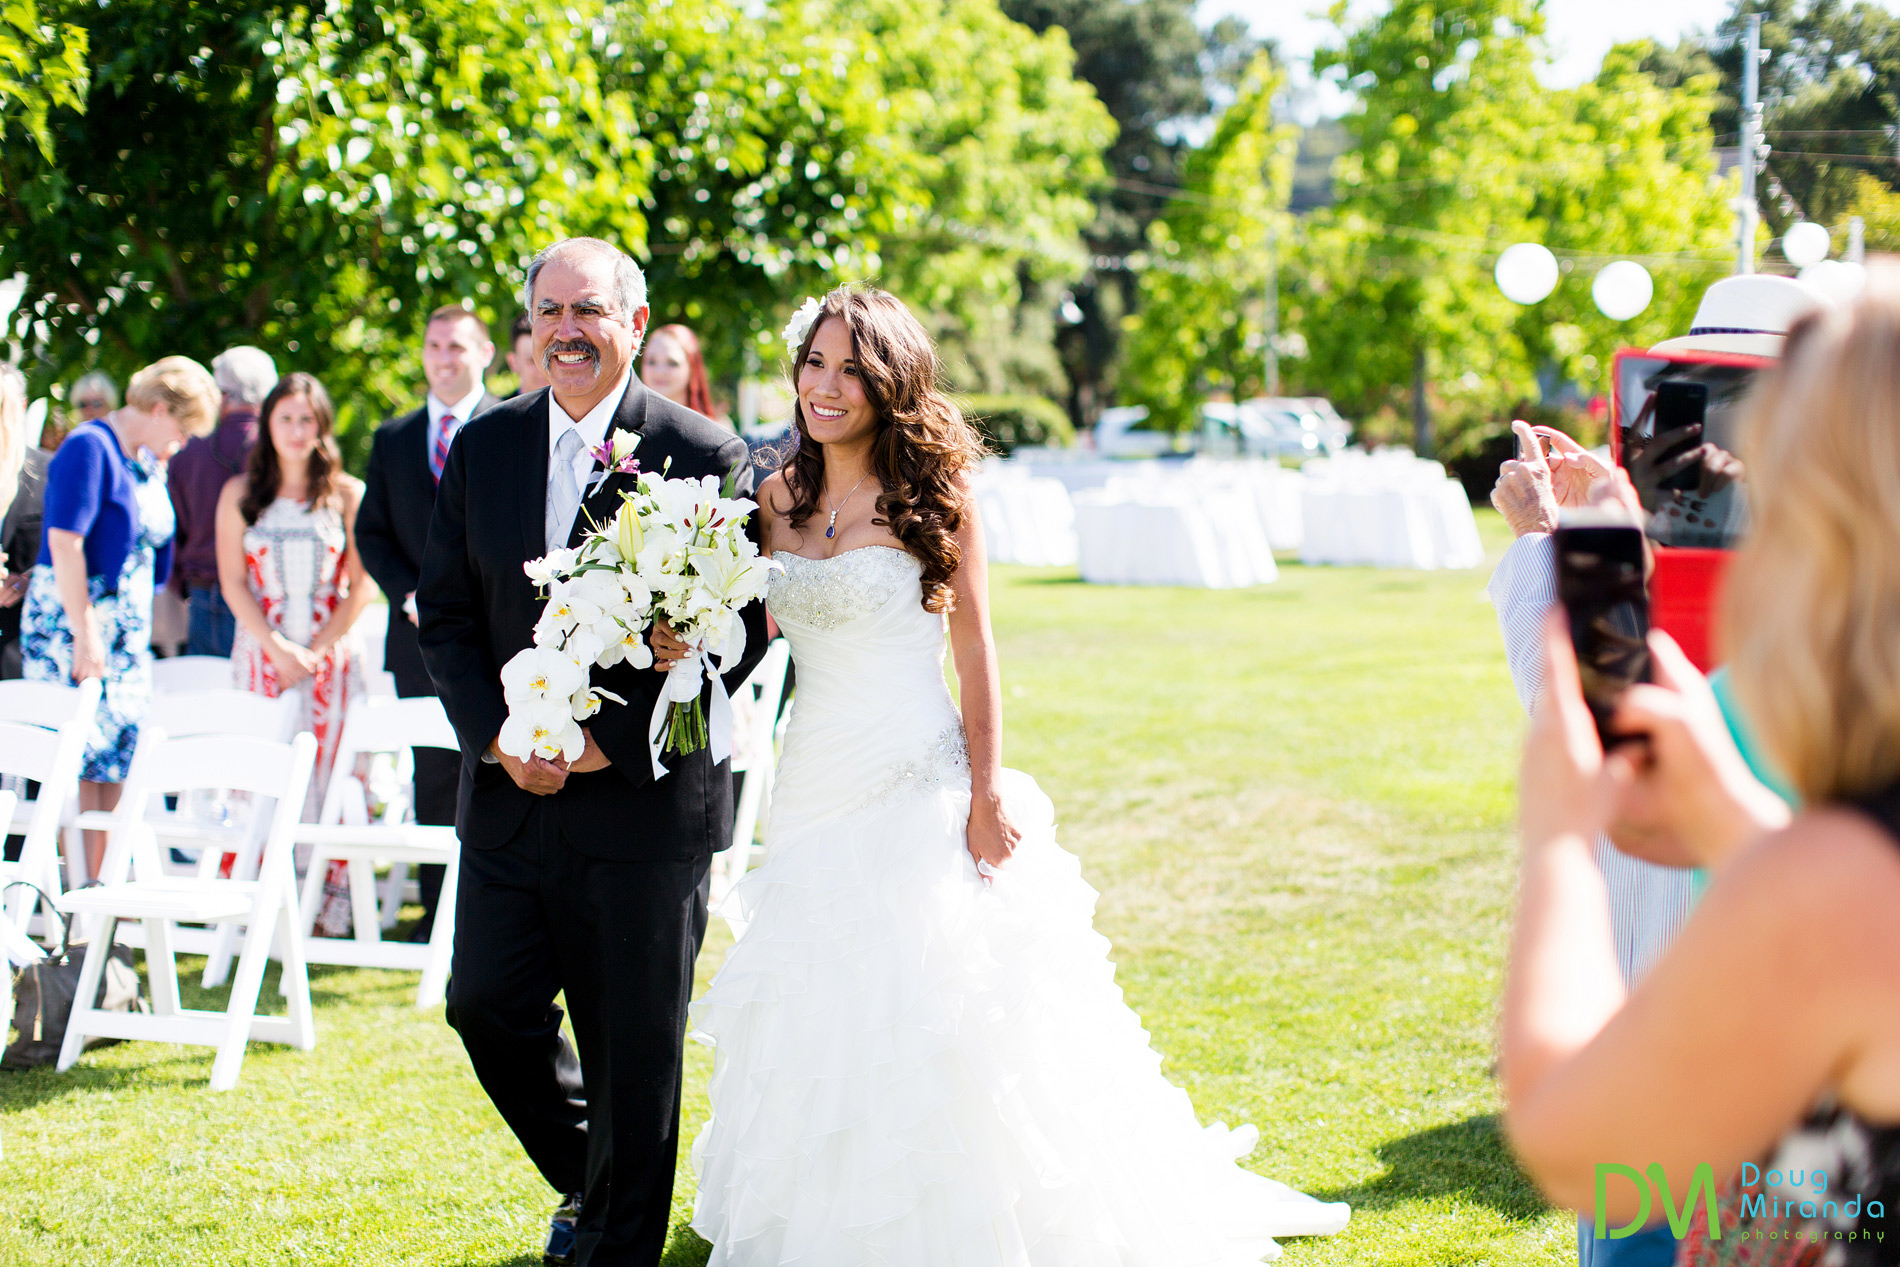 Rosie and her dad walking down the aisle at the start of her Geyserville Inn wedding ceremony